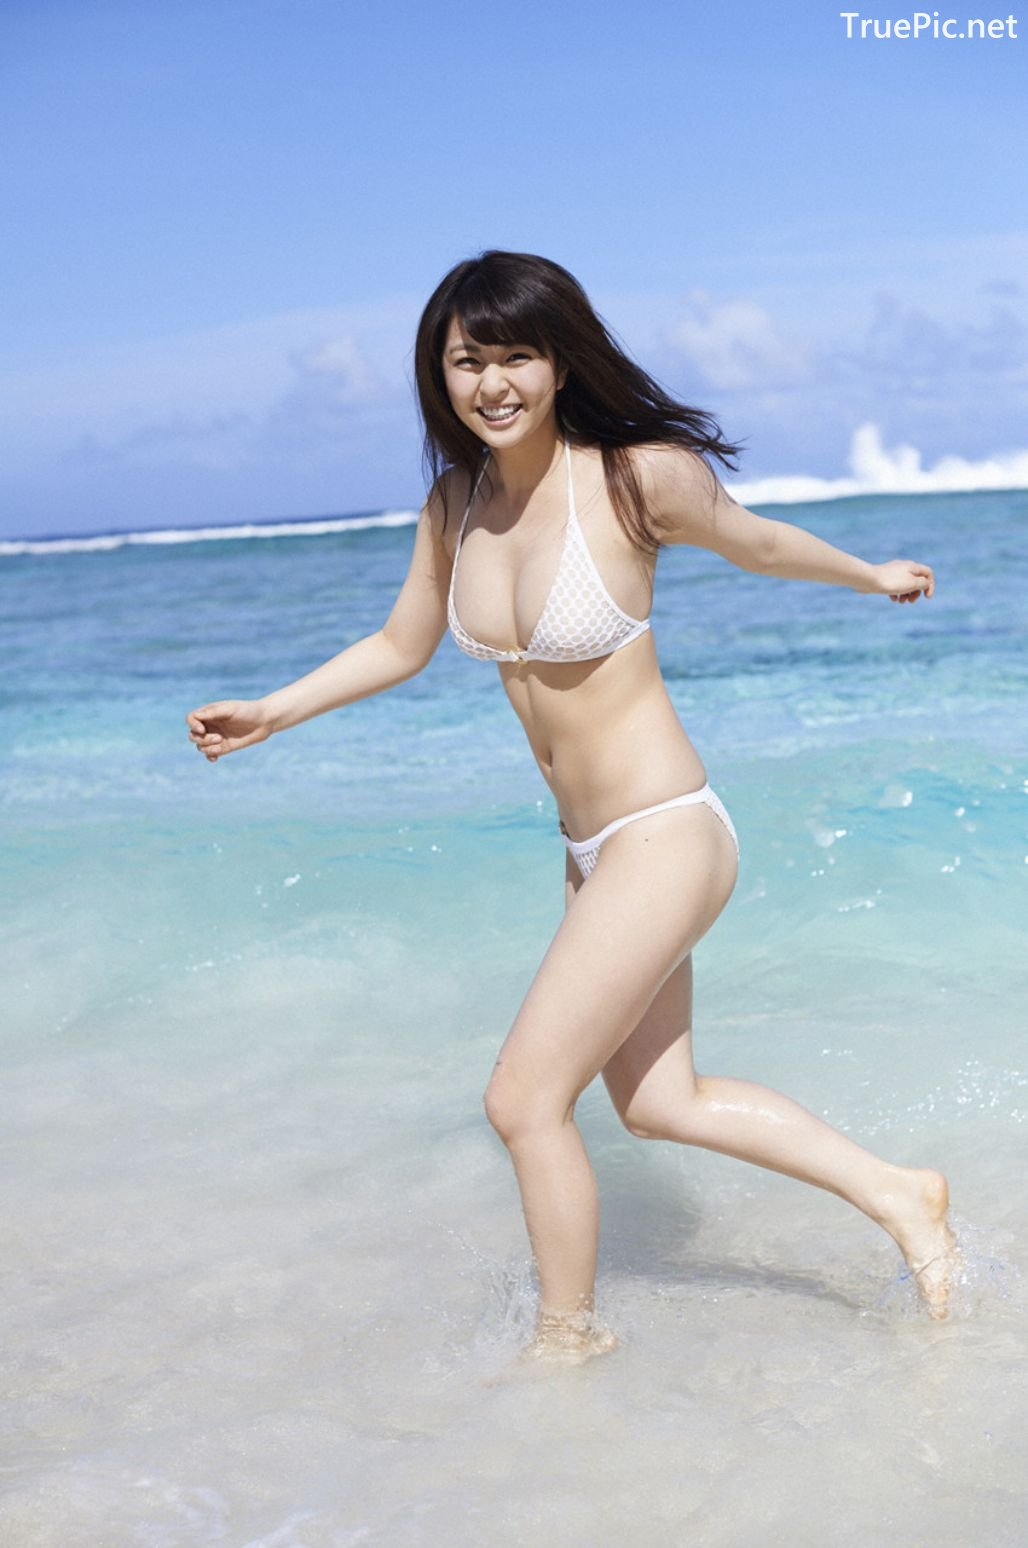 Image-Japanese-Actress-And-Model-Yurina-Yanagi-Blue-Sea-And-Hot-Bikini-Girl-TruePic.net- Picture-1